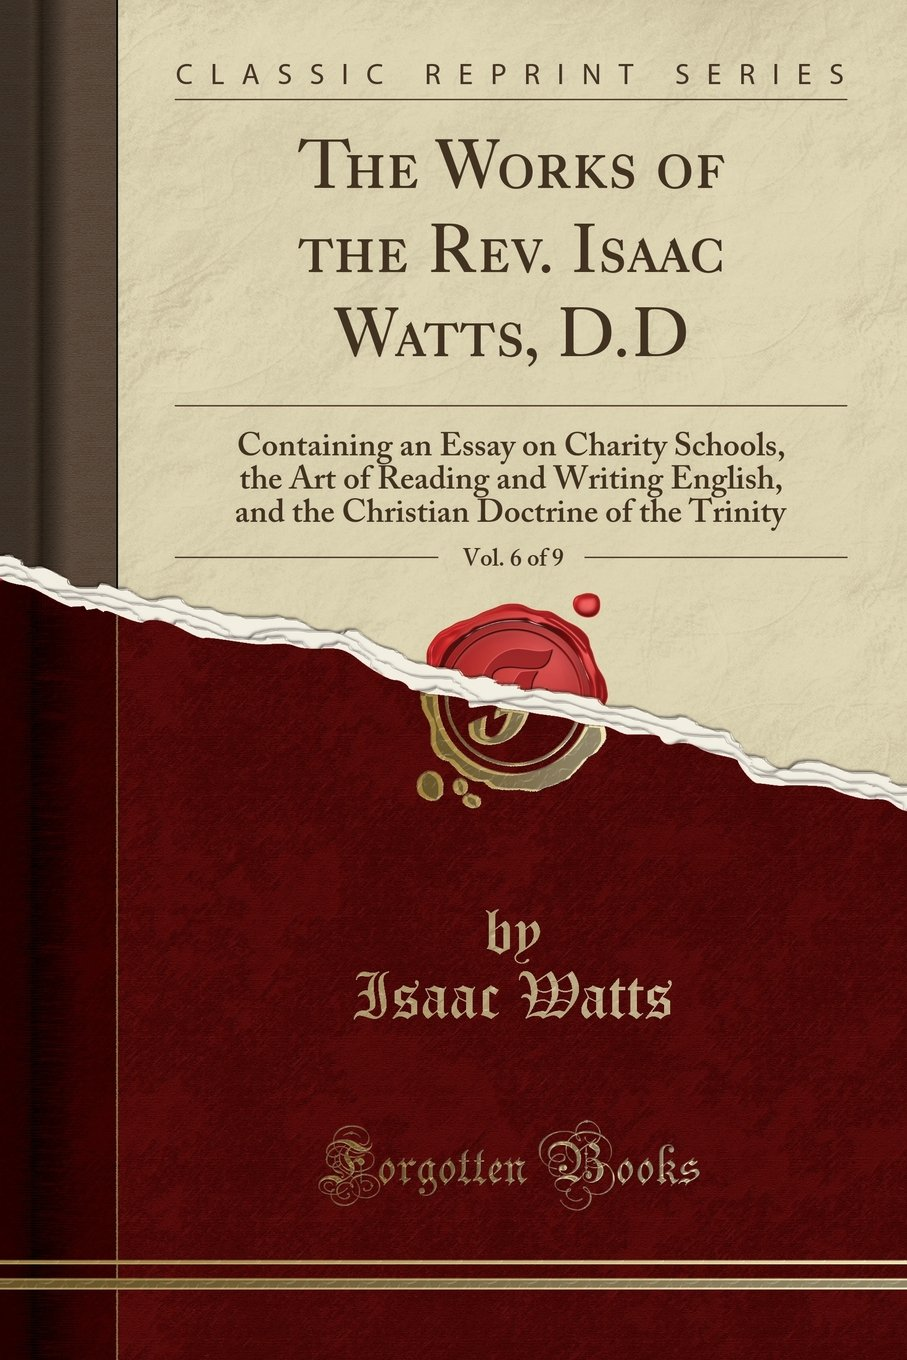 The Works of the Rev. Isaac Watts, D.D, Vol. 6 of 9: Containing an Essay on Charity Schools, the Art of Reading and Writing English, and the Christian Doctrine of the Trinity (Classic Reprint) PDF